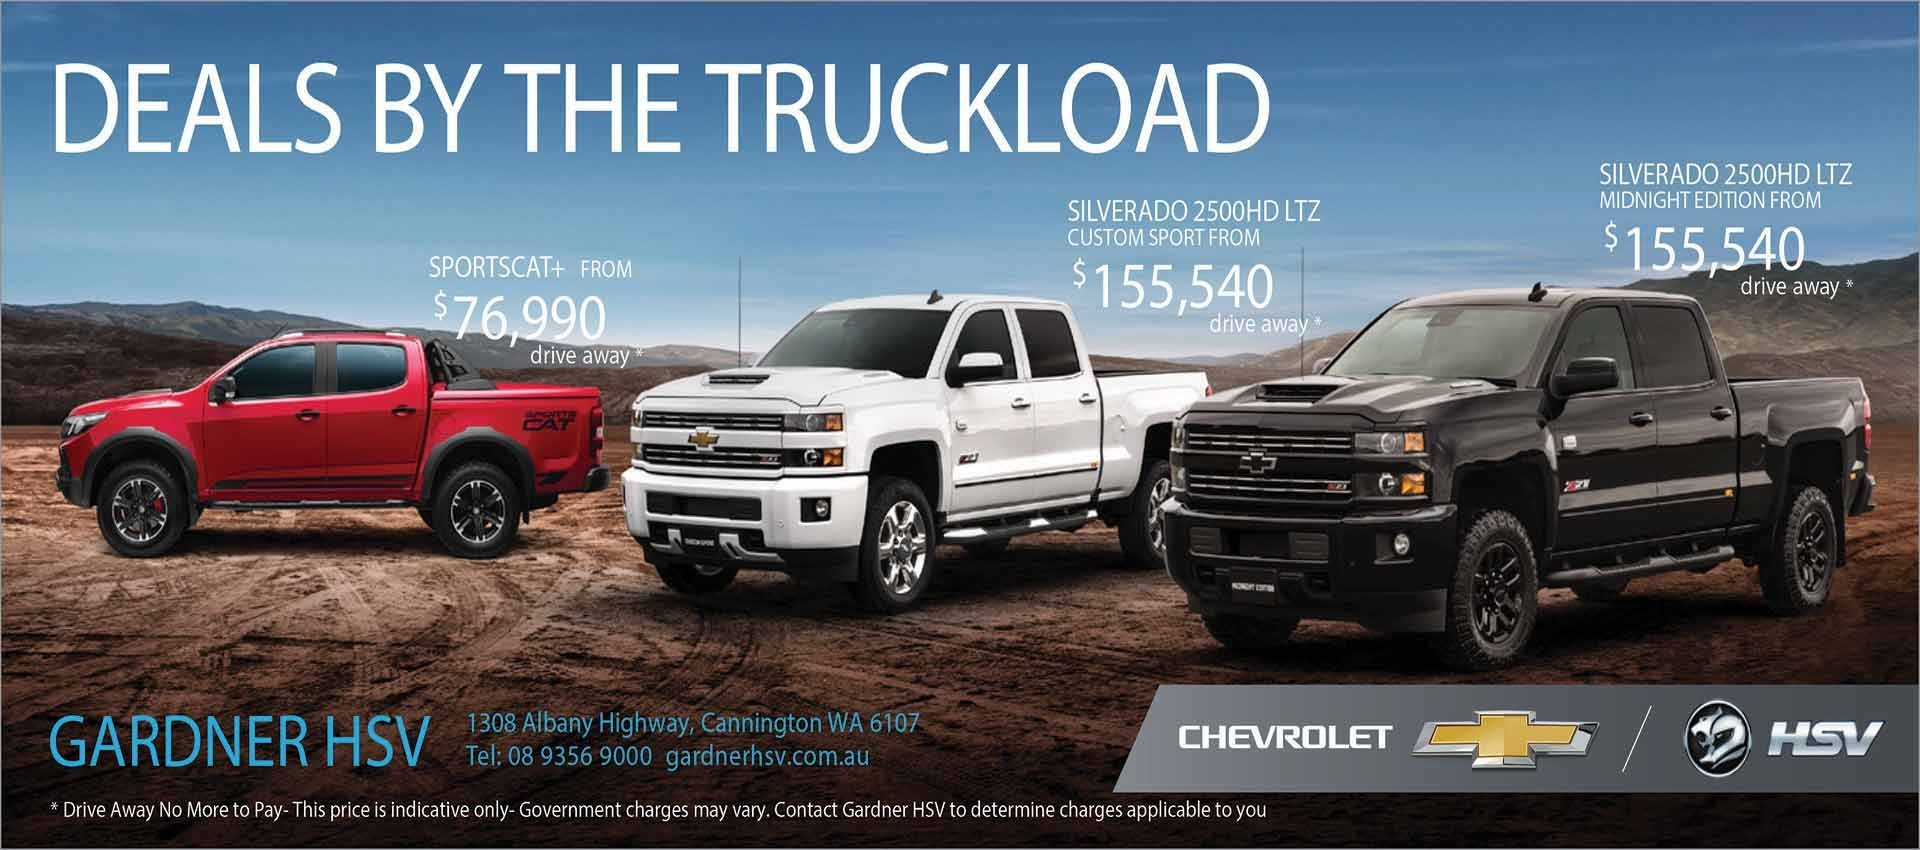 Deals By the Truckload